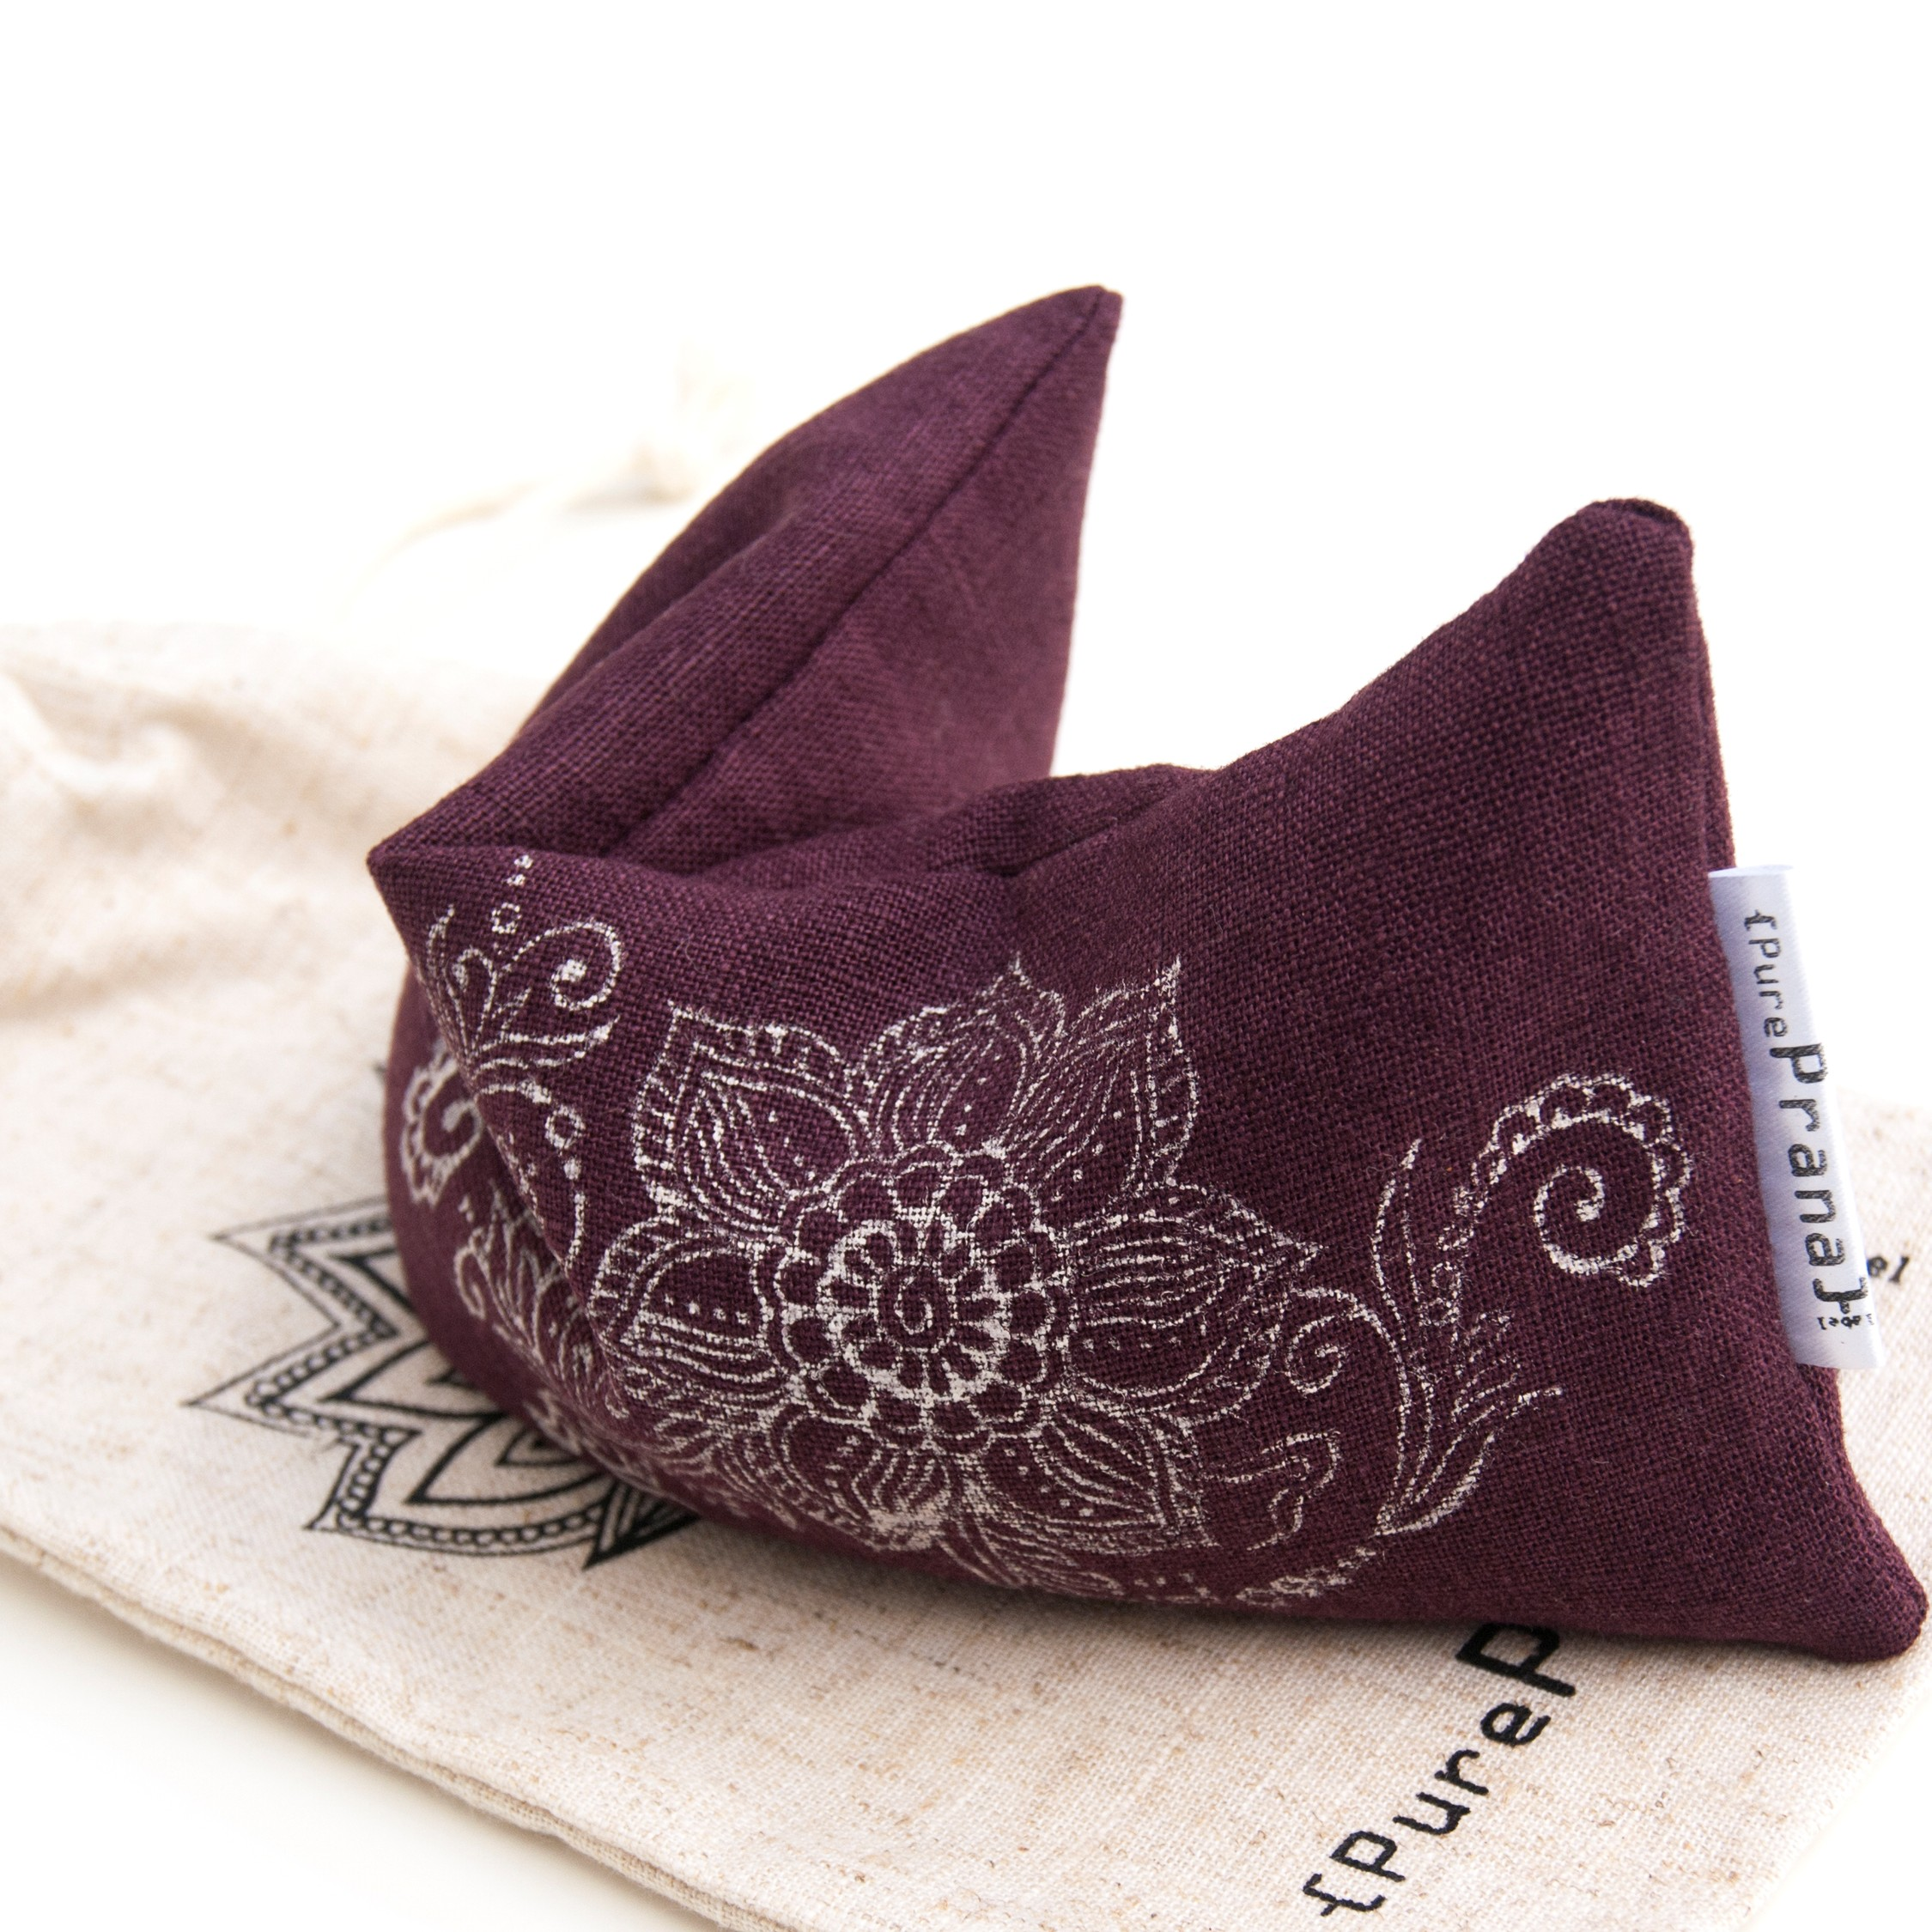 Flexible and relaxing the eyes, this lavender eye pillow is your partner in meditation